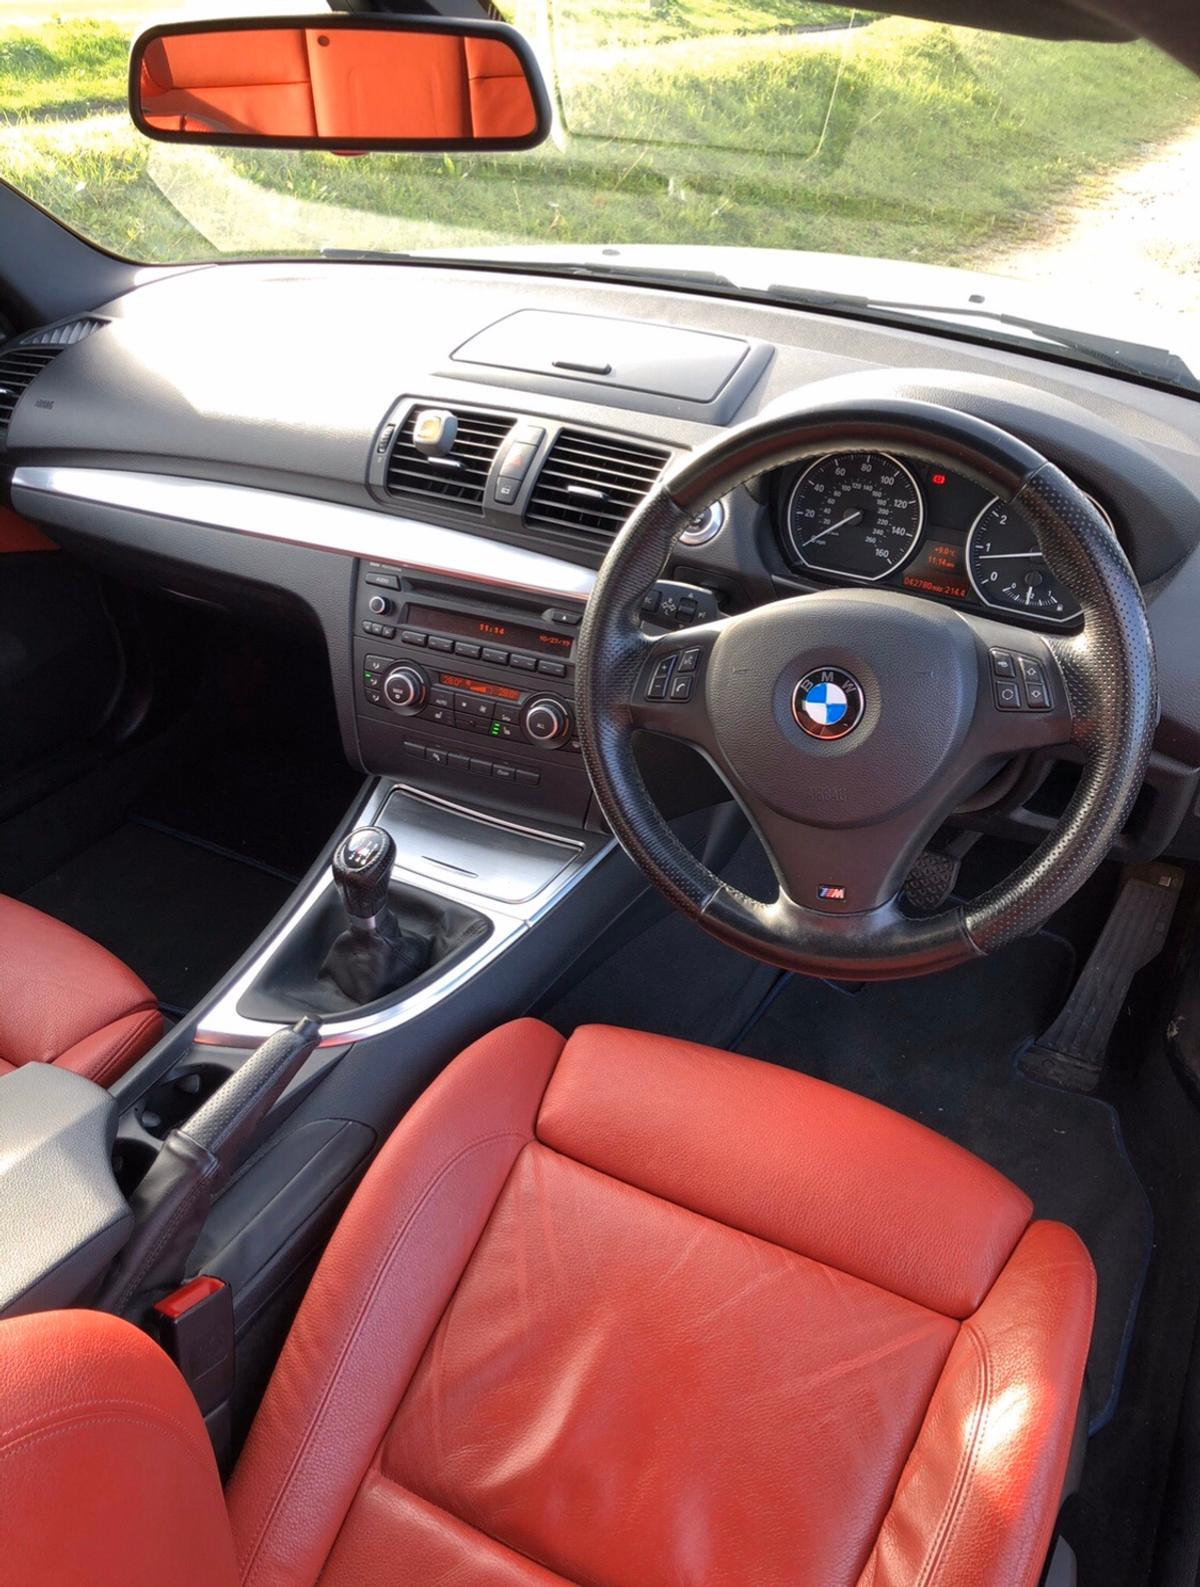 Bmw 1 Series M Sport In Da1 Bexley For 7 000 00 For Sale Shpock